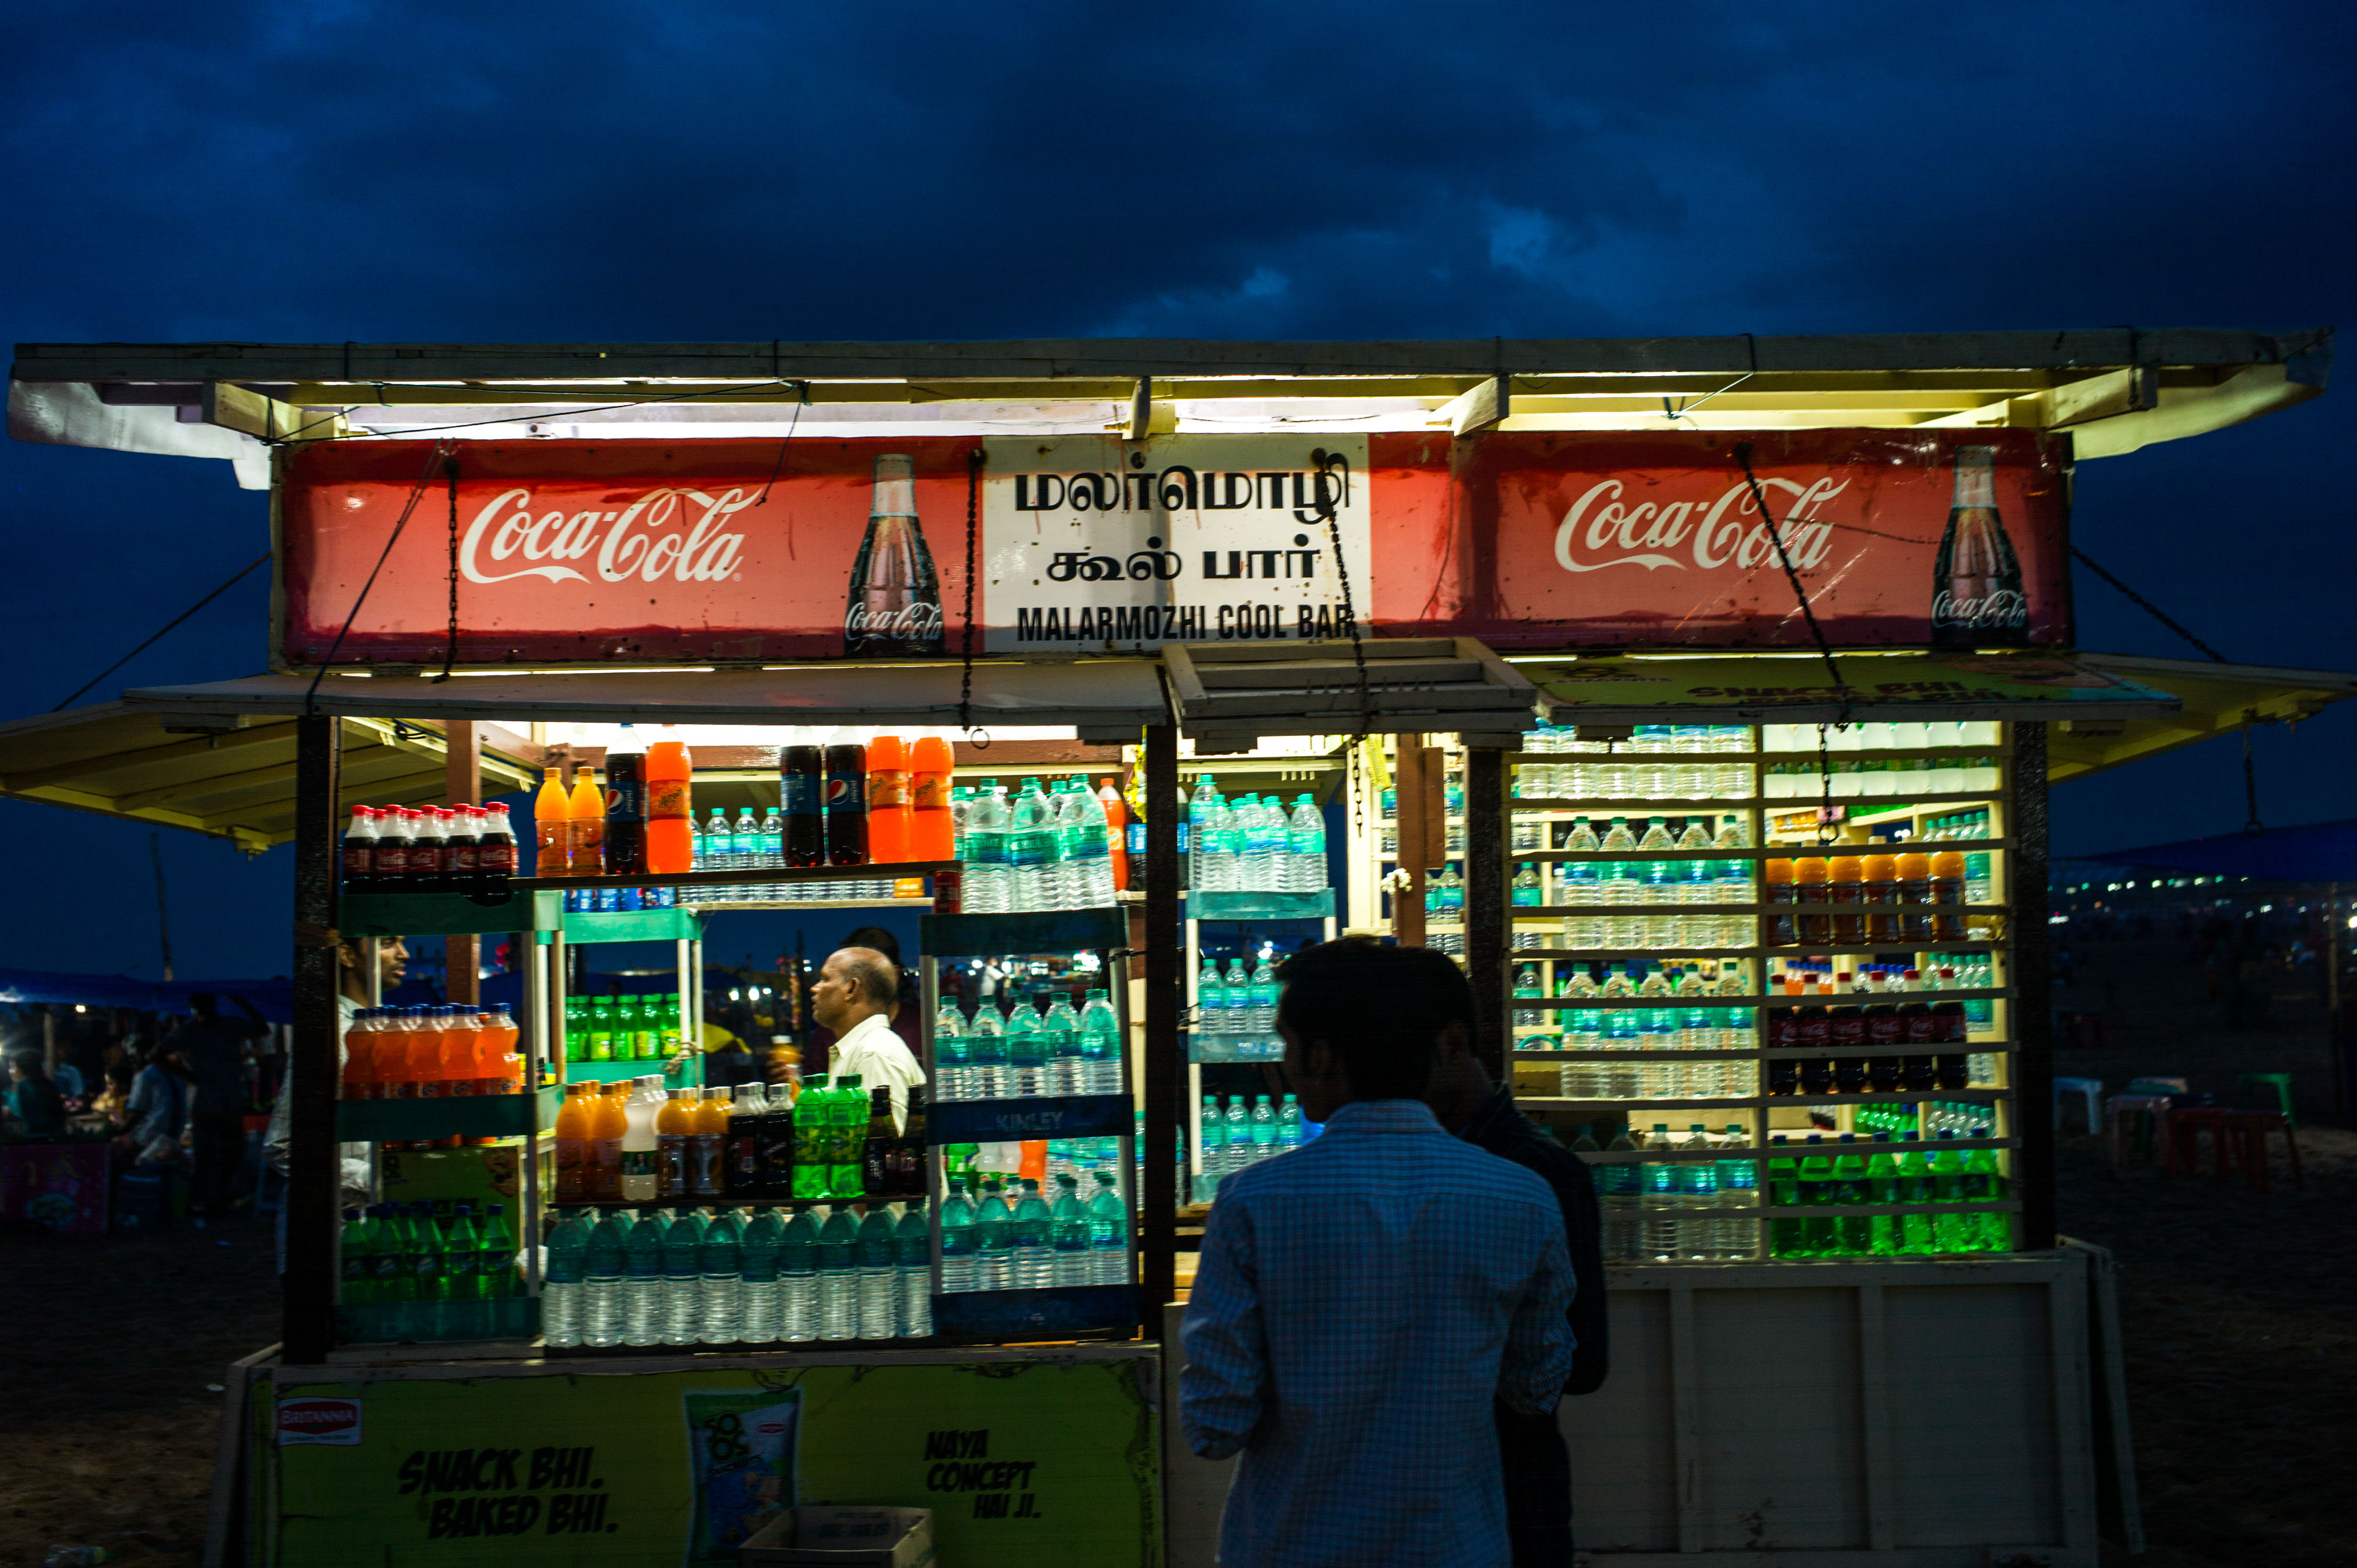 A vendor sells water and bottled drinks on Marina Beach in Chennai, Tamil Nadu, India, on July 20, 2014.